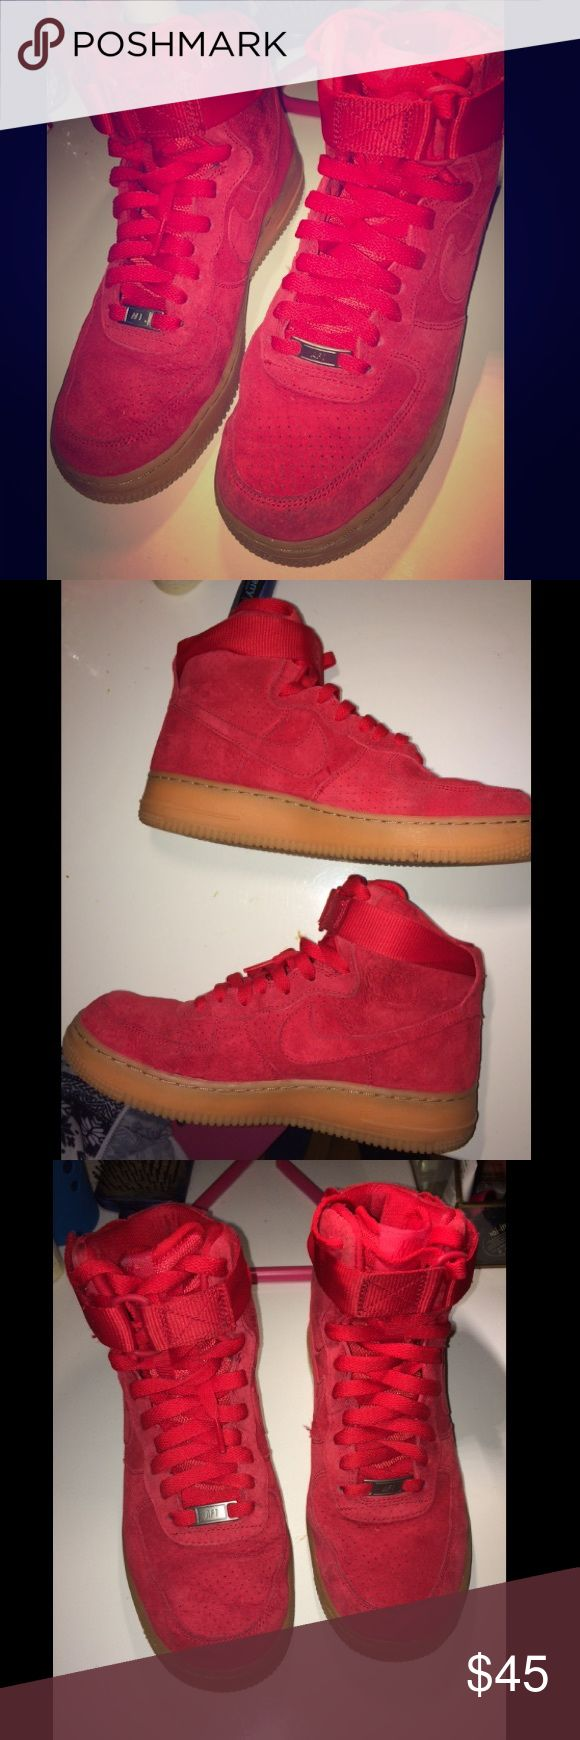 Nike Hi-Top Red Suede Air Force Ones Size 8.5 Red Suede Nike Hi-Top Air Force Ones, Womens 8.5 or Mens 6.5, barely worn Nike Shoes Sneakers